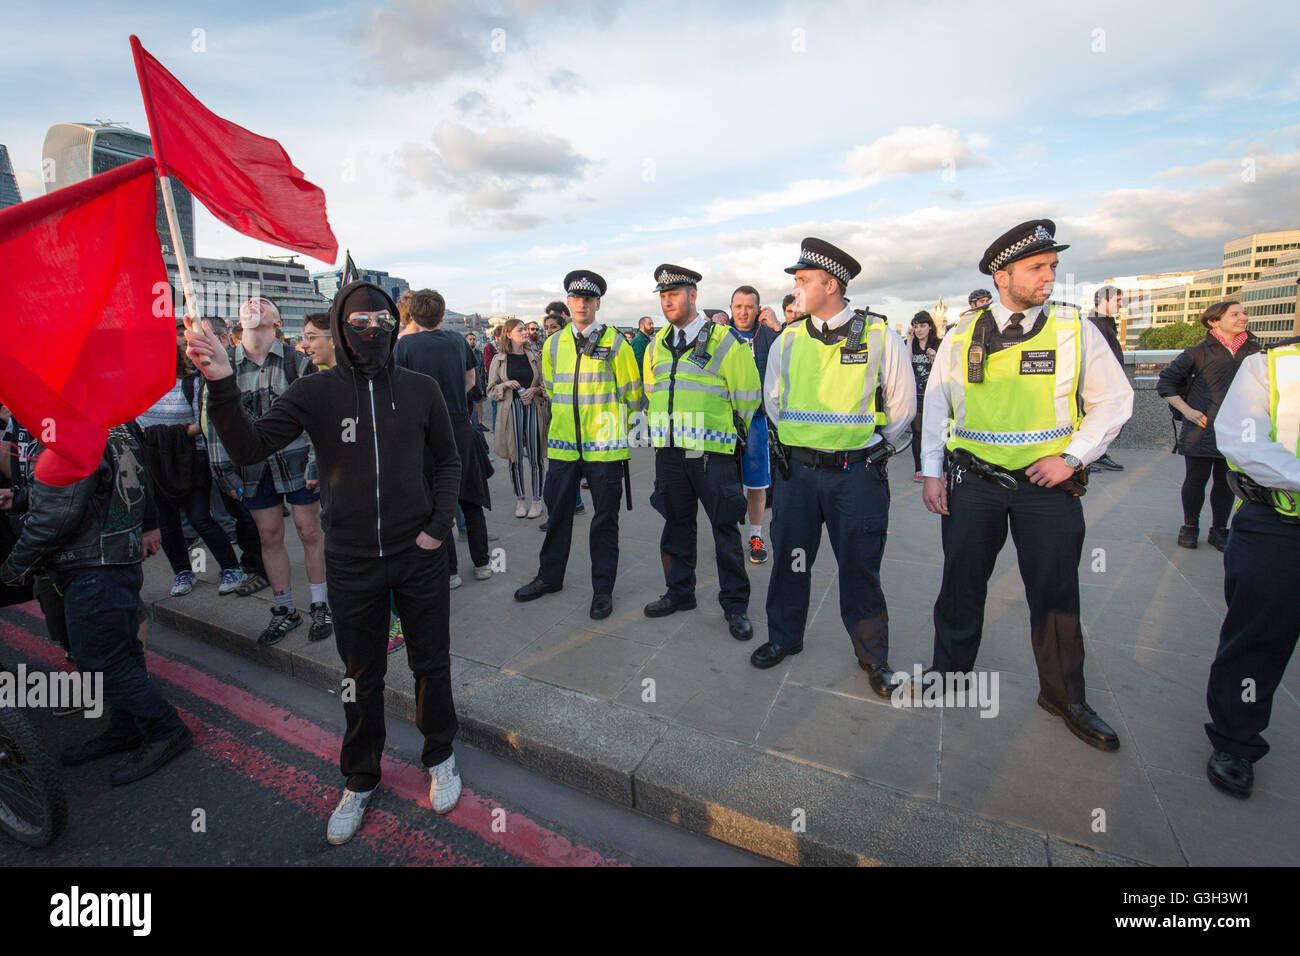 London, UK. 24th June, 2016. Defend All Migrants. A post EU referendum protest led by over five hundred pro-refugee - Stock Image